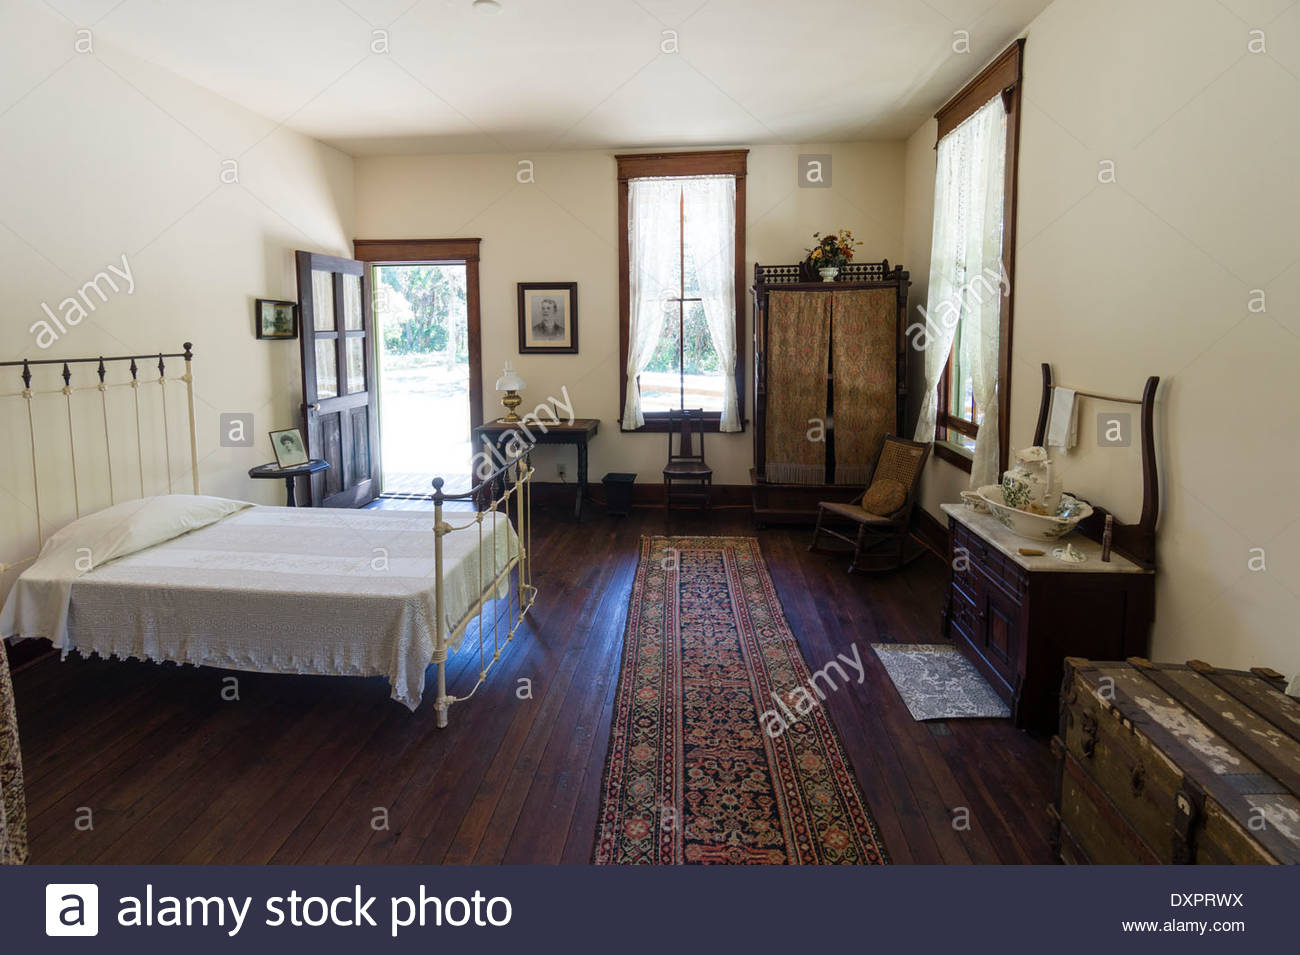 A bedroom in the Planetary Court building at the Koreshan State Historic Site in Estero, Florida - Stock Image